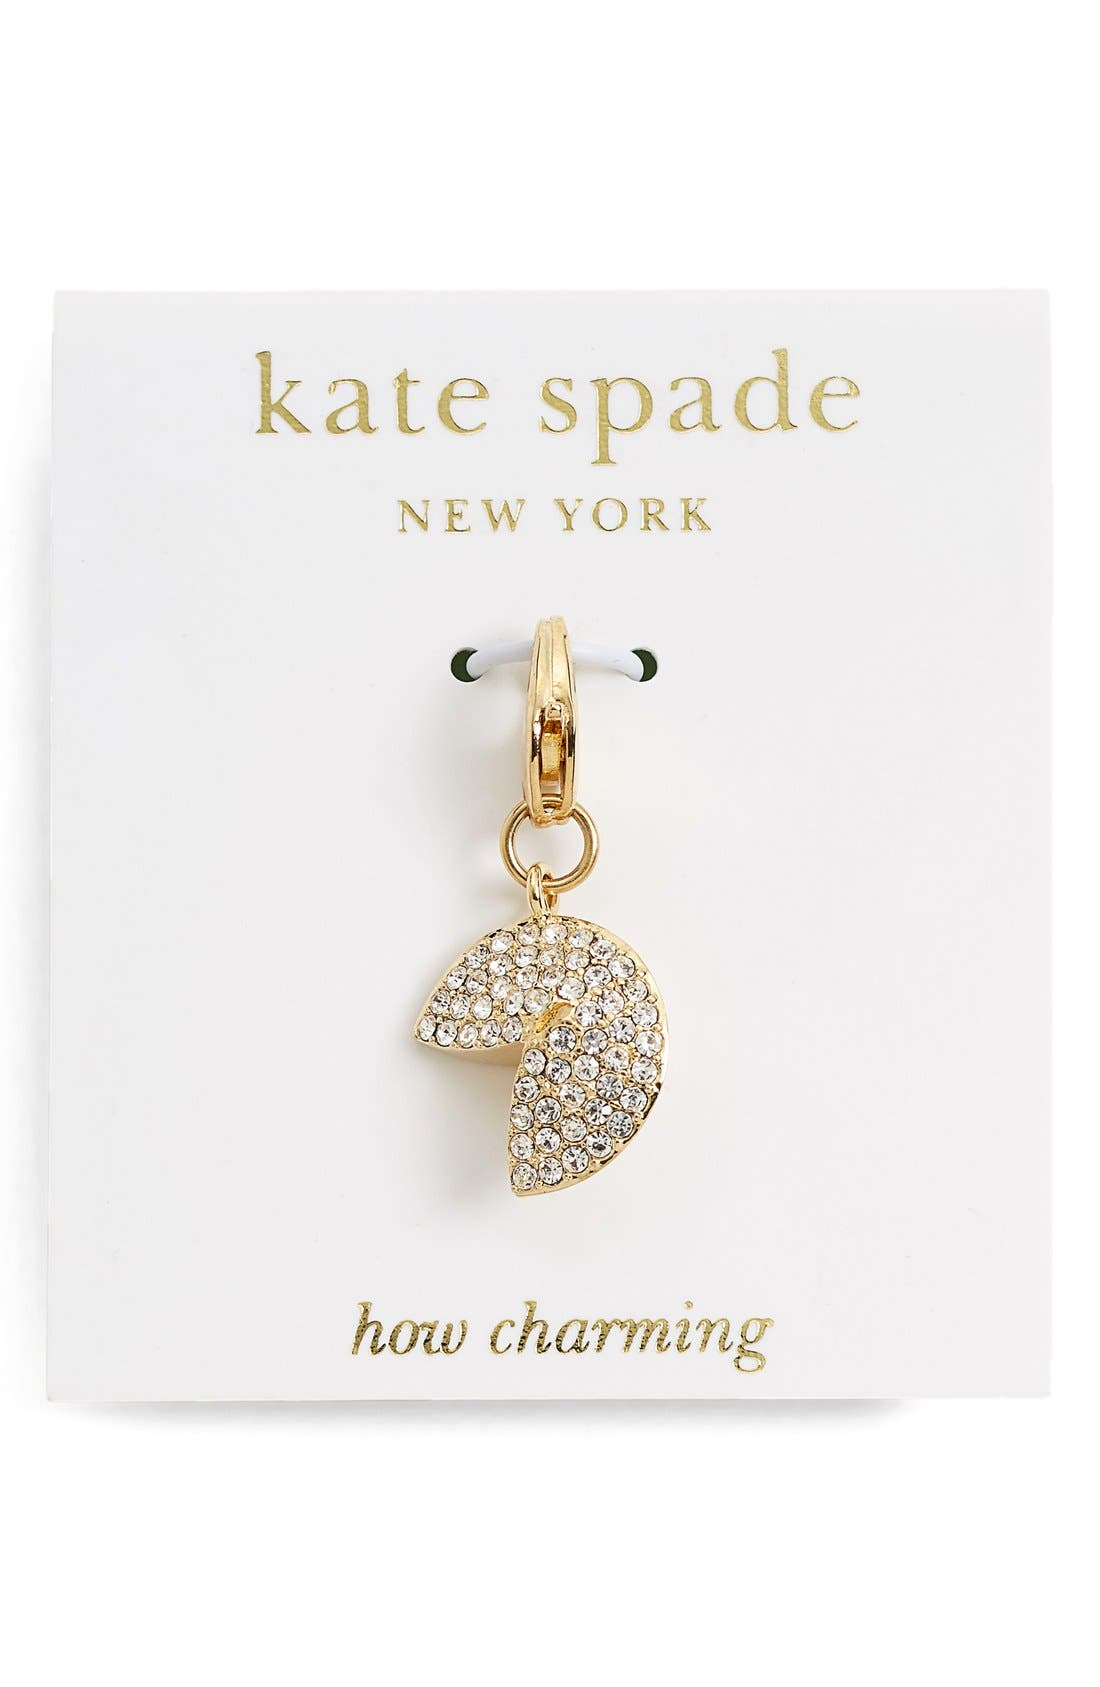 Alternate Image 1 Selected - kate spade new york 'how charming' novelty charm